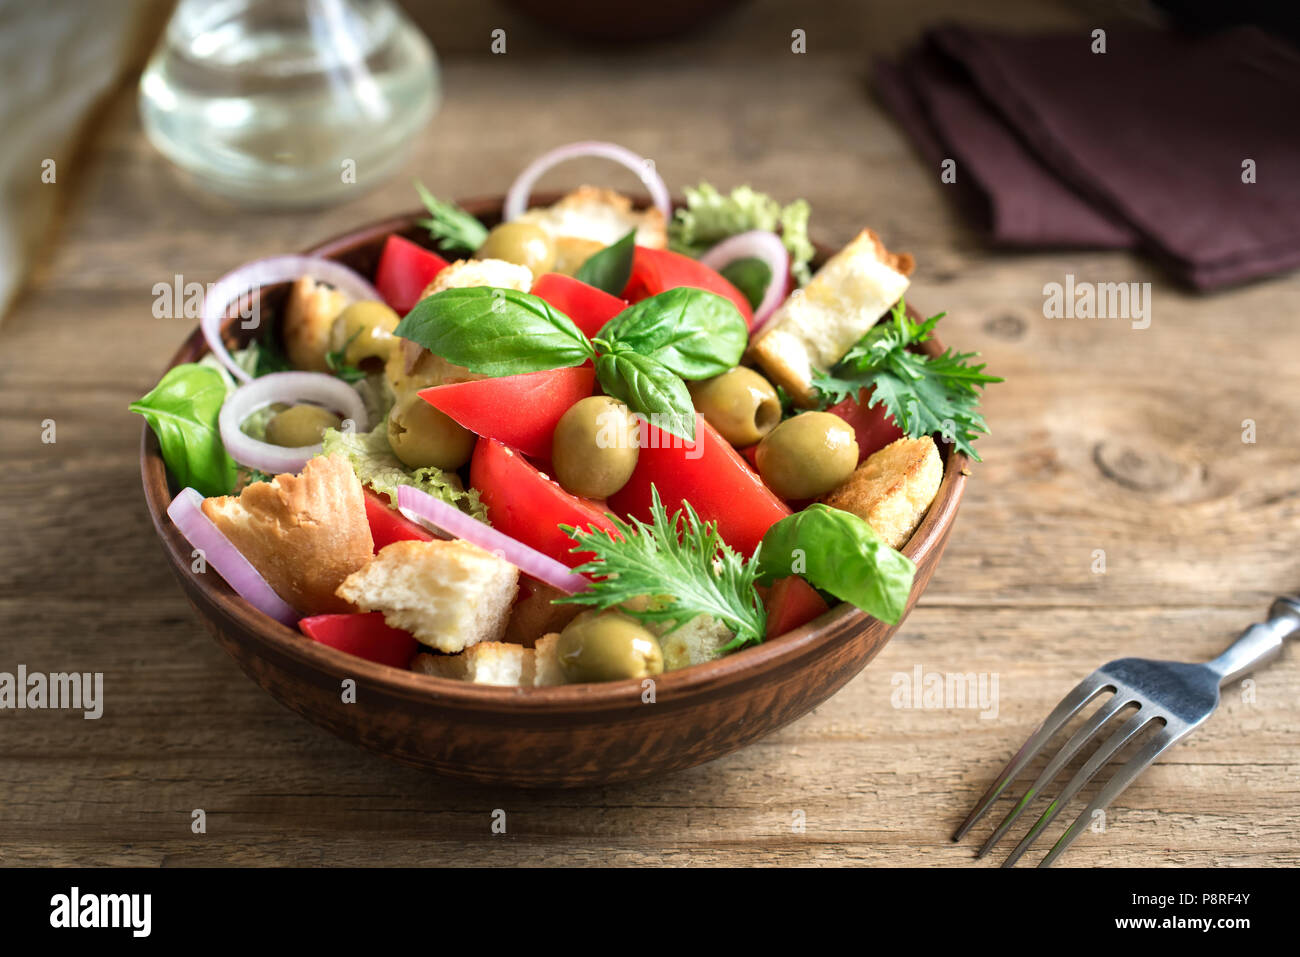 Panzanella Tomato Salad with cherry tomatoes, basil and ciabatta croutons. Summer healthy food - panzanella salad, copy space. - Stock Image